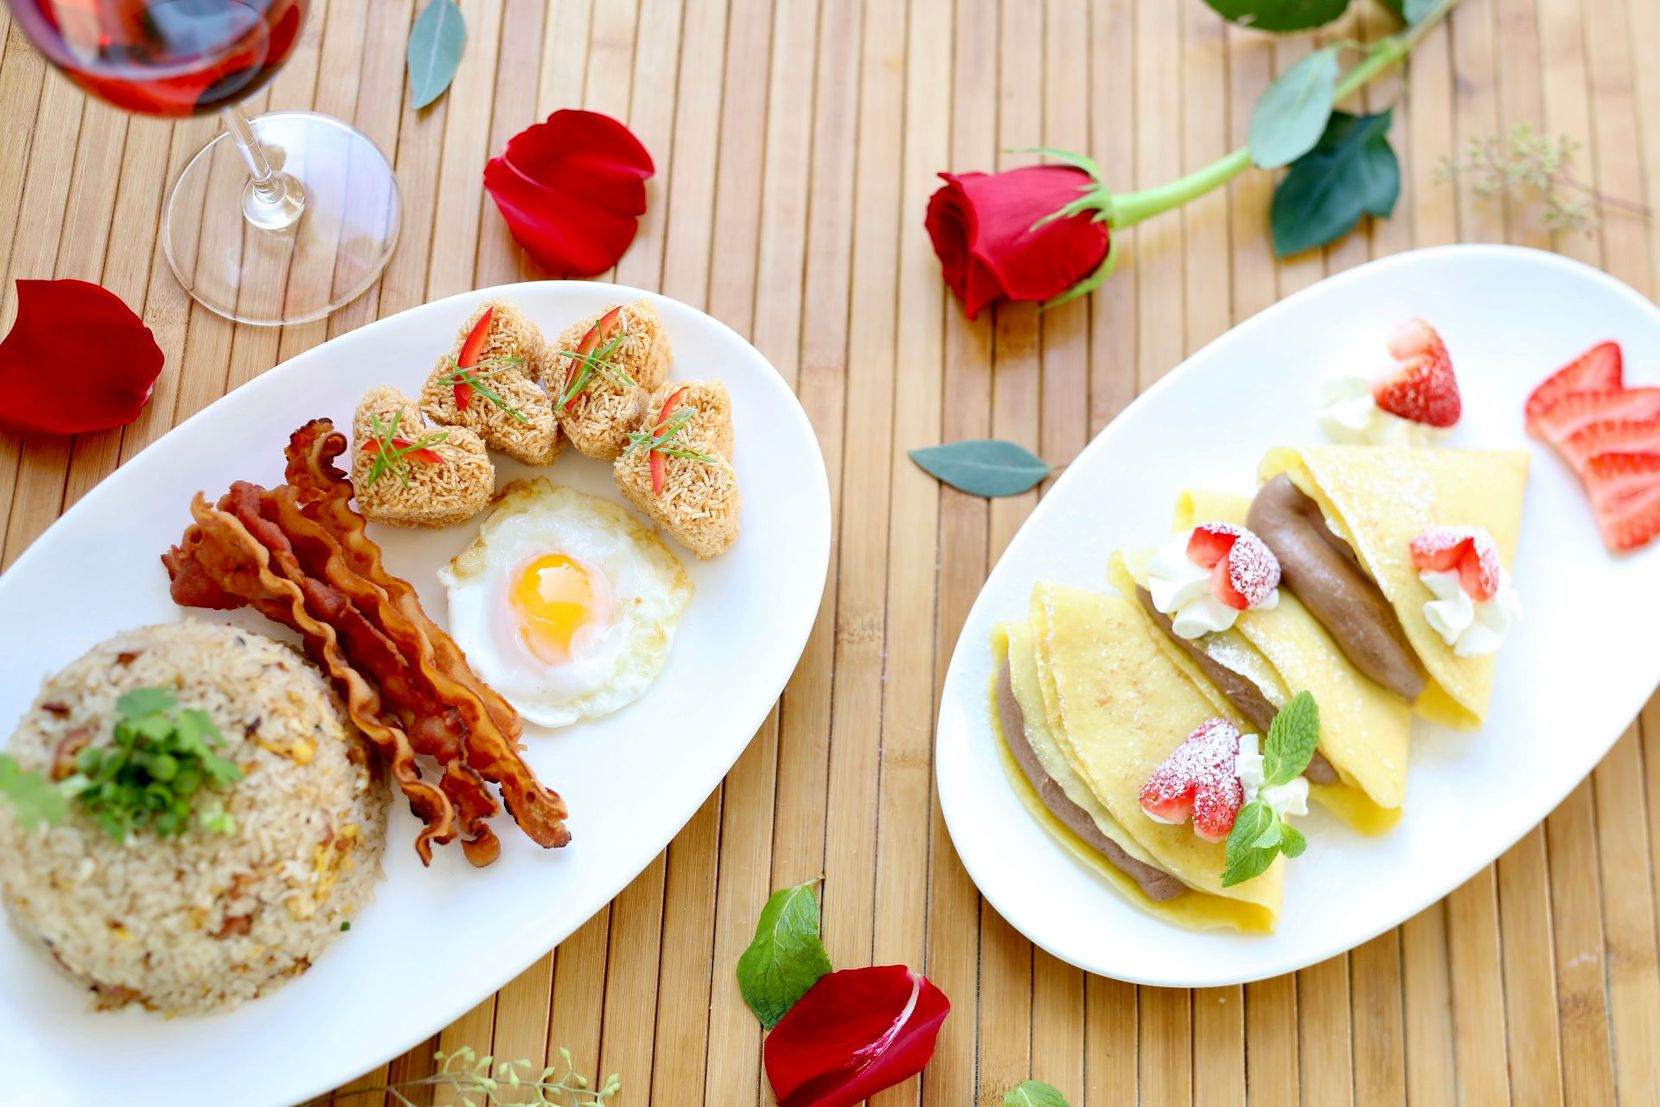 Asian Mint's takeout Valentine's Day brunch includes bacon fried rice with a Thai fried egg, mee krob (sweet crispy noodles) and chocolate mousse crepes.